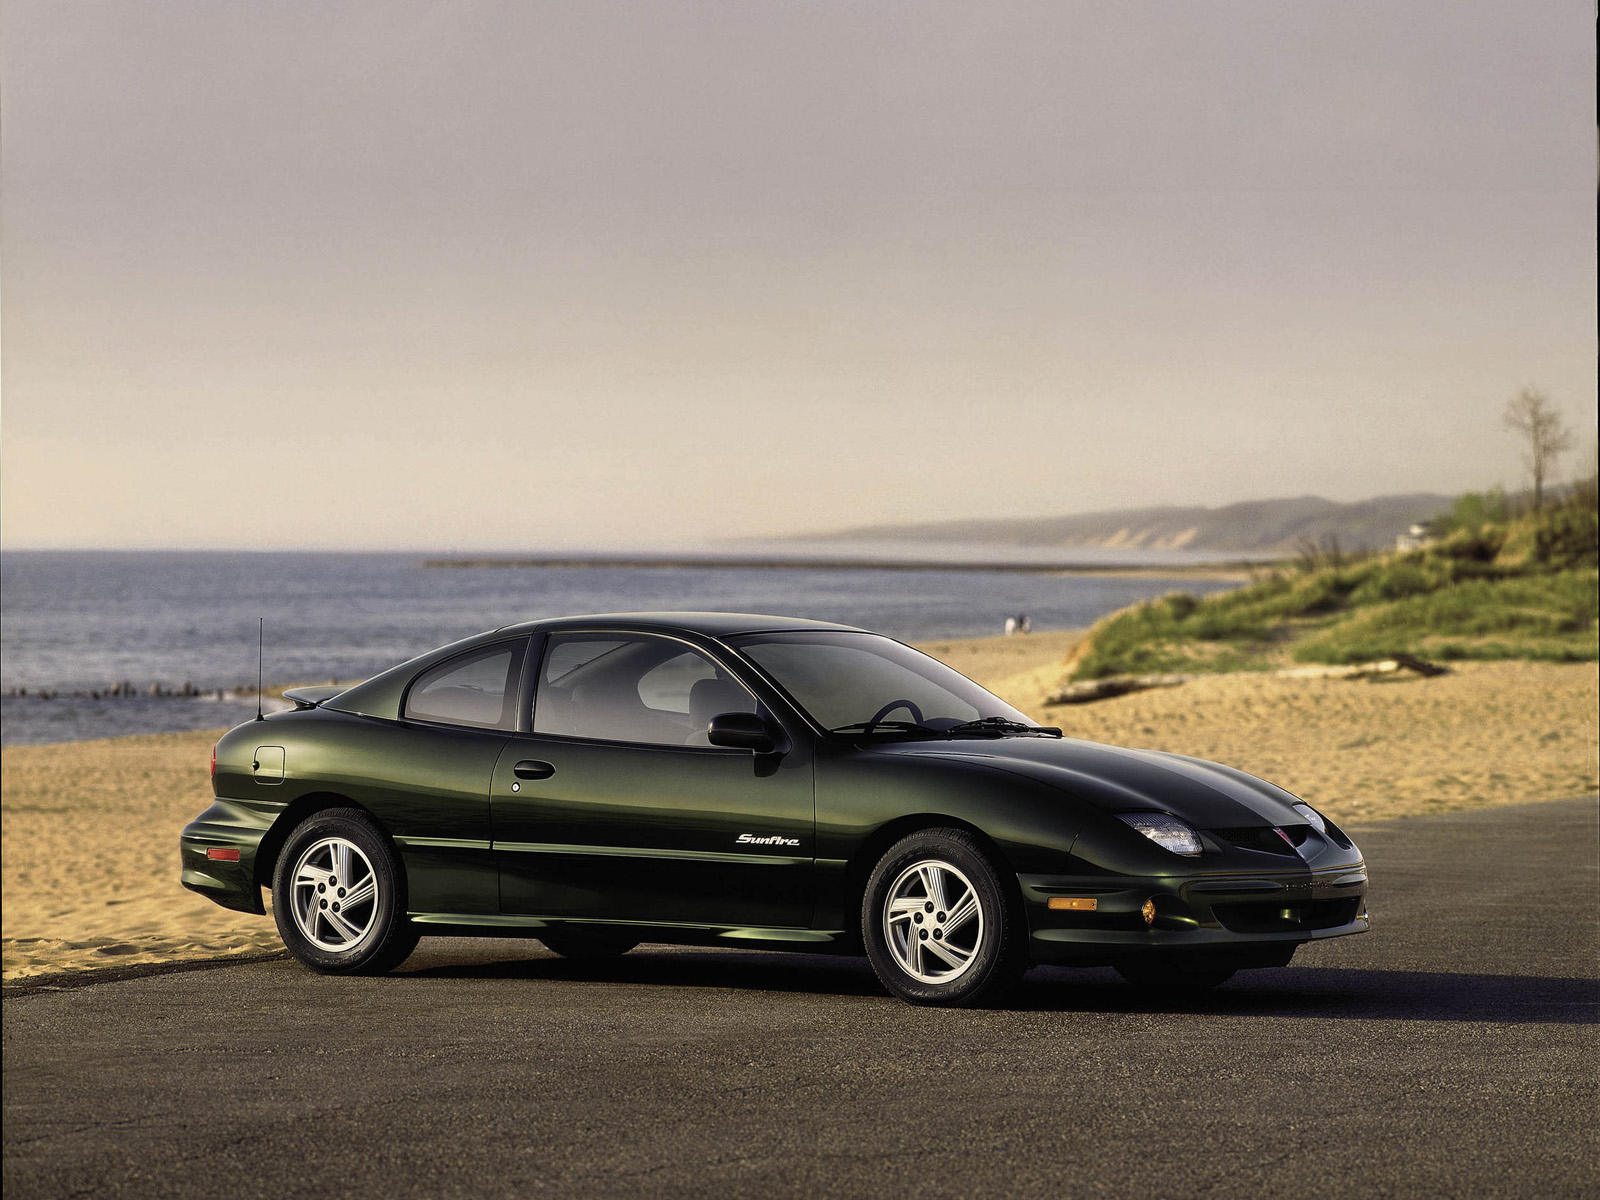 Pontiac Sunfire photo 85187